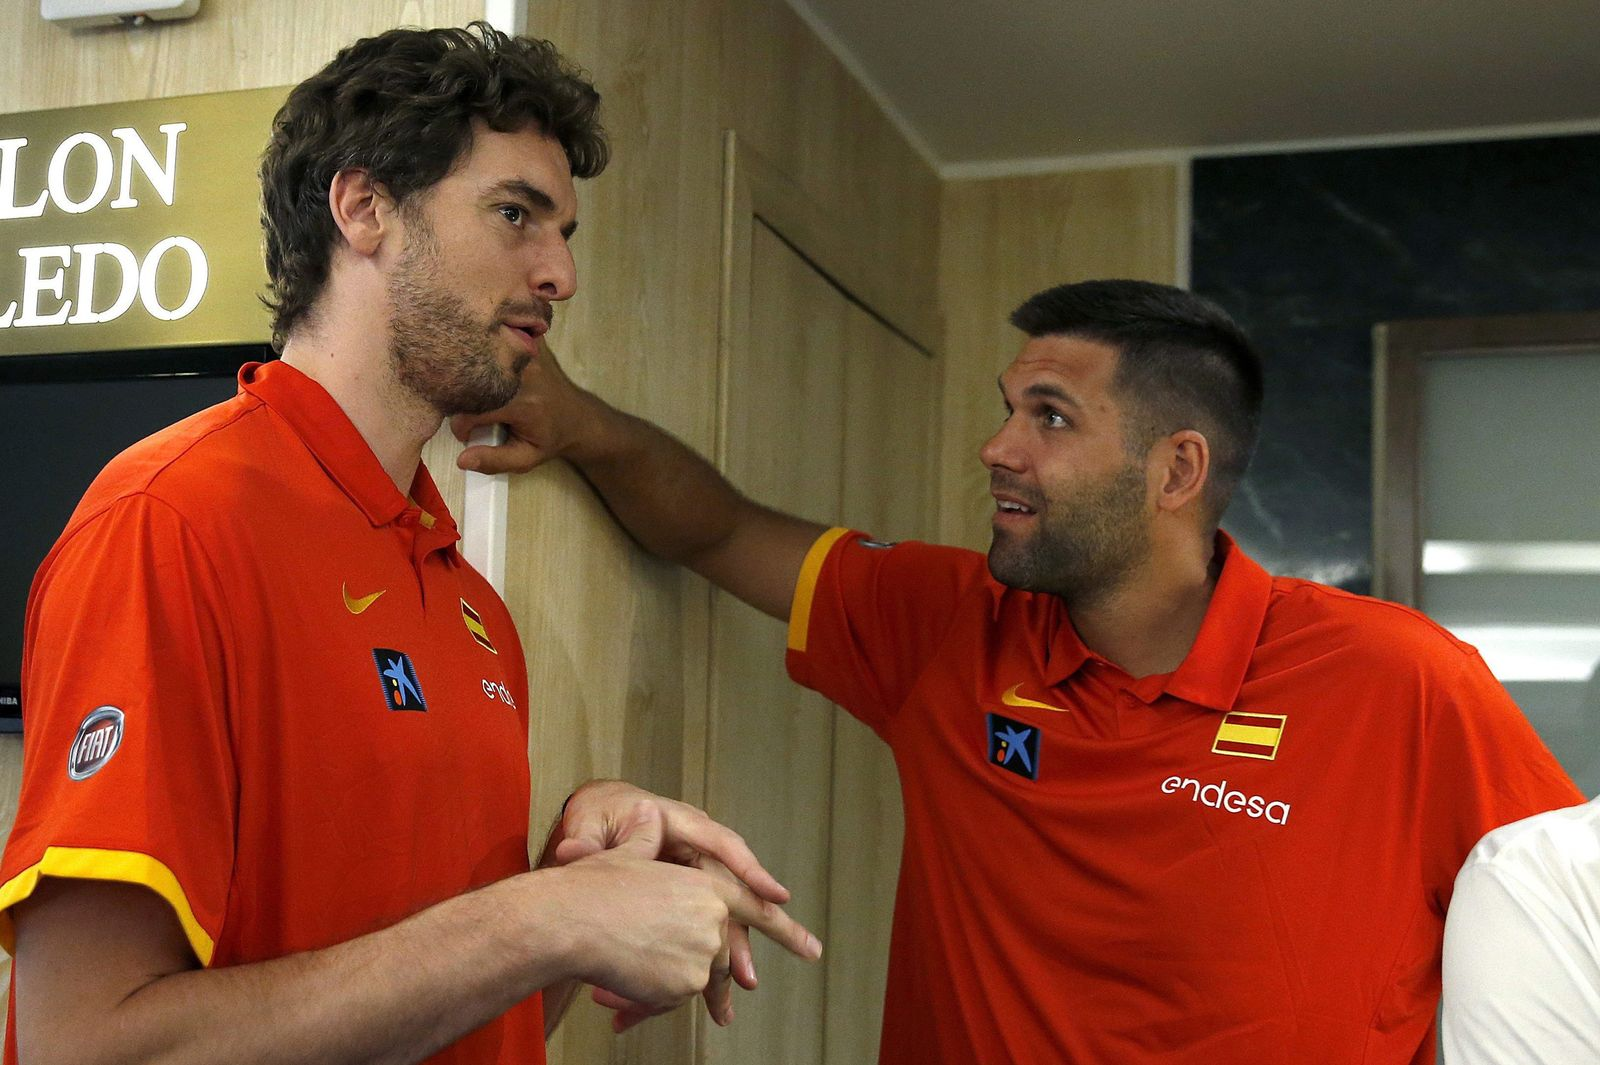 Spanish Basketball team for RIO 2016